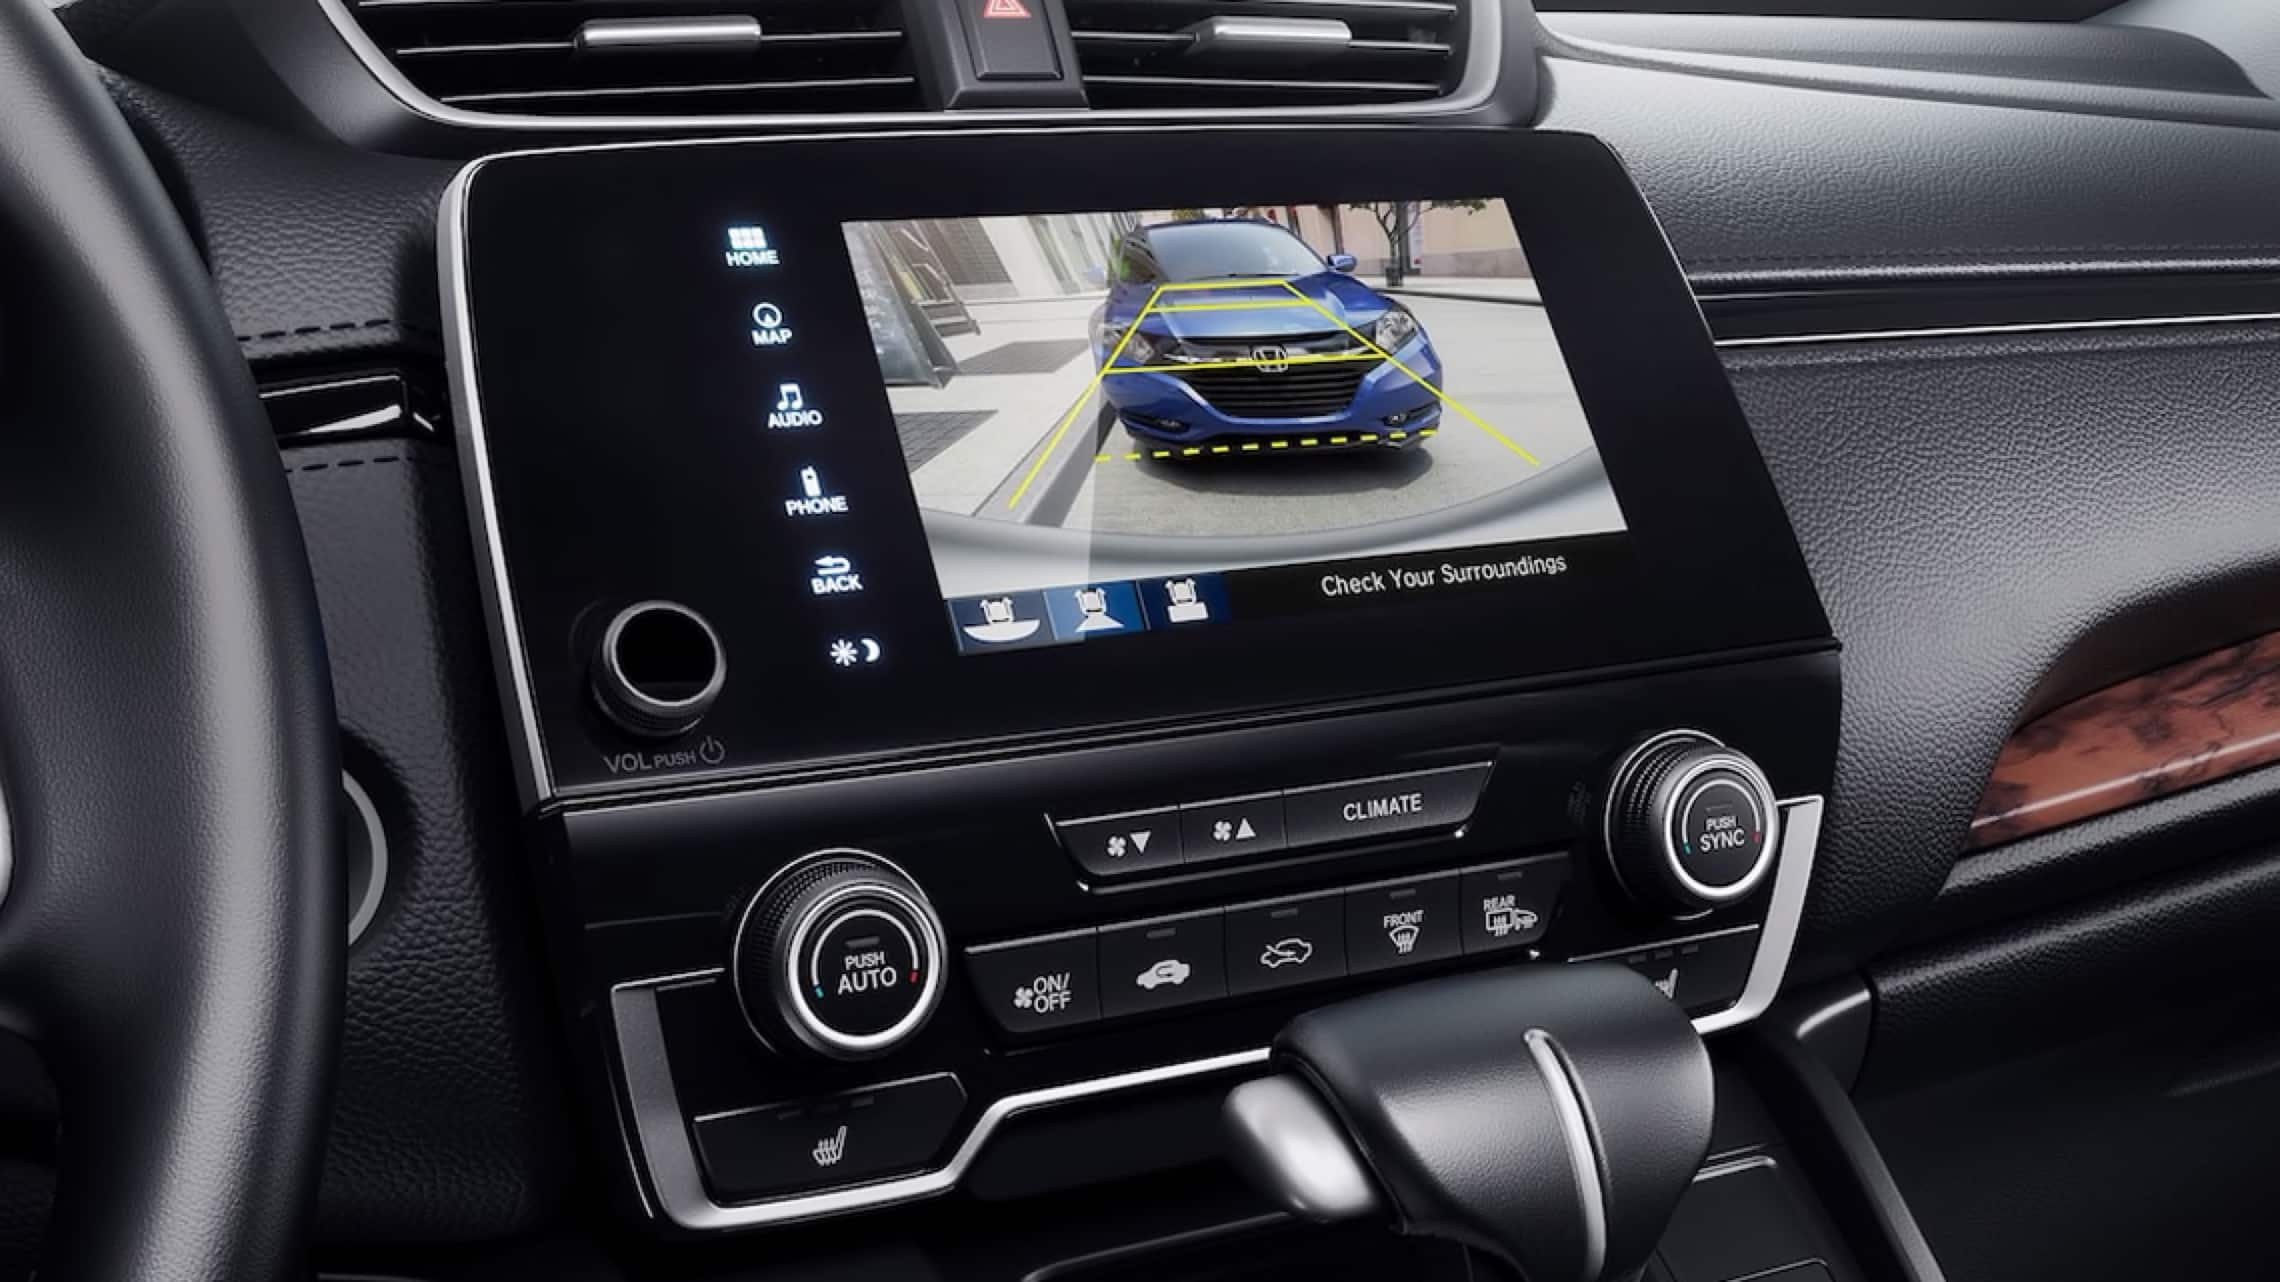 Display Audio touch-screen showing multi-angle rearview camera.